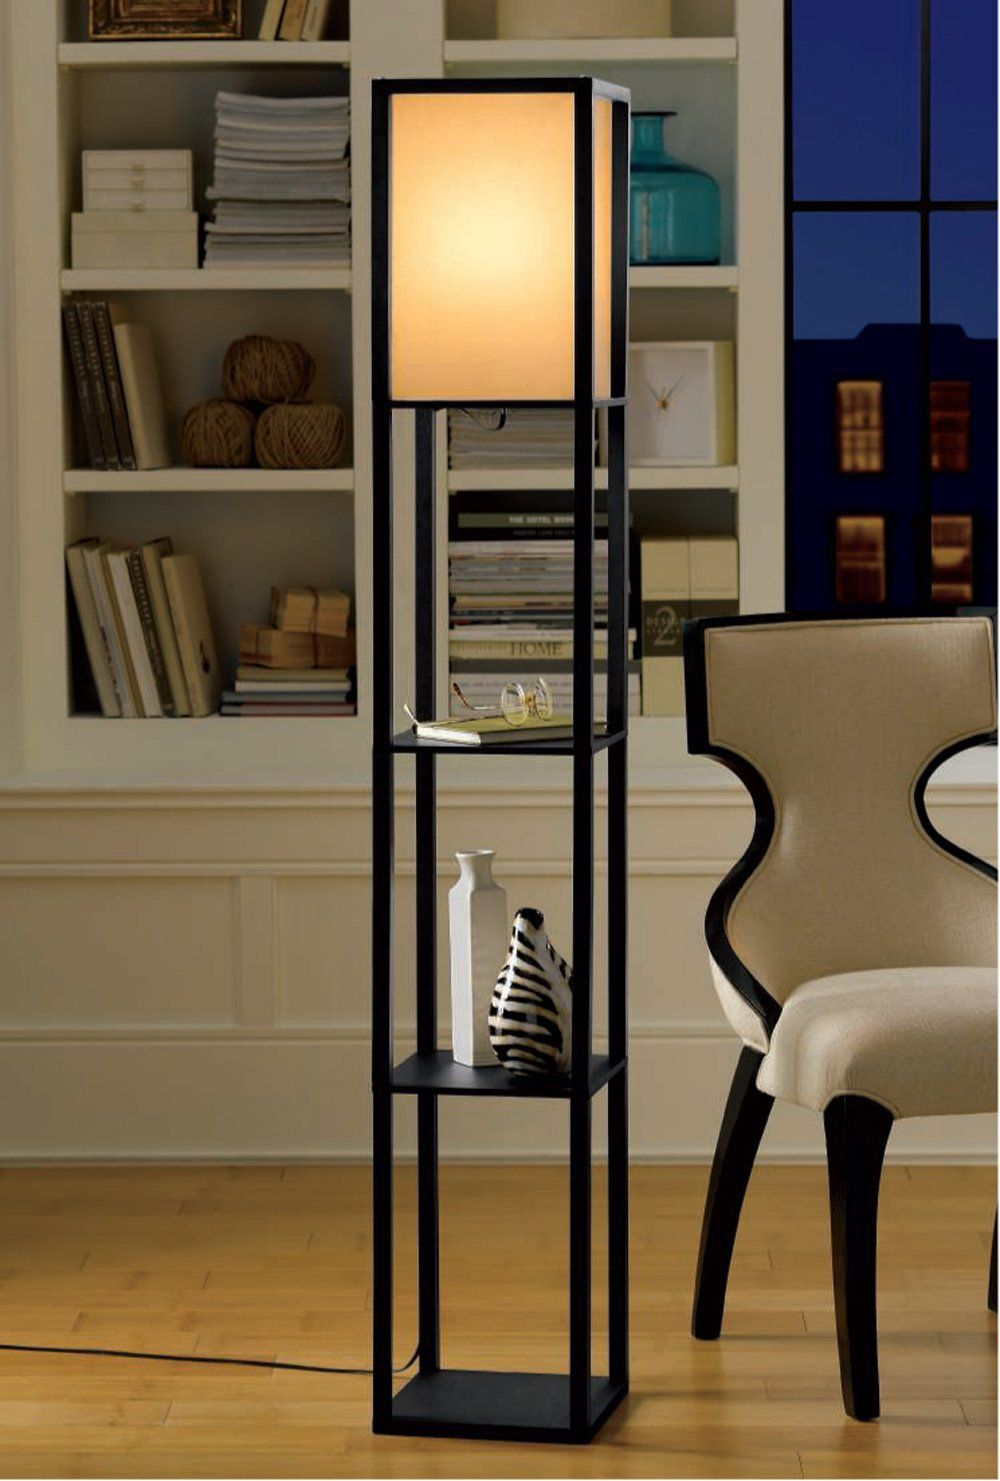 The Original Shelf Lamp Floor Lamp With Shelves Living Room Lighting Lamps Living Room